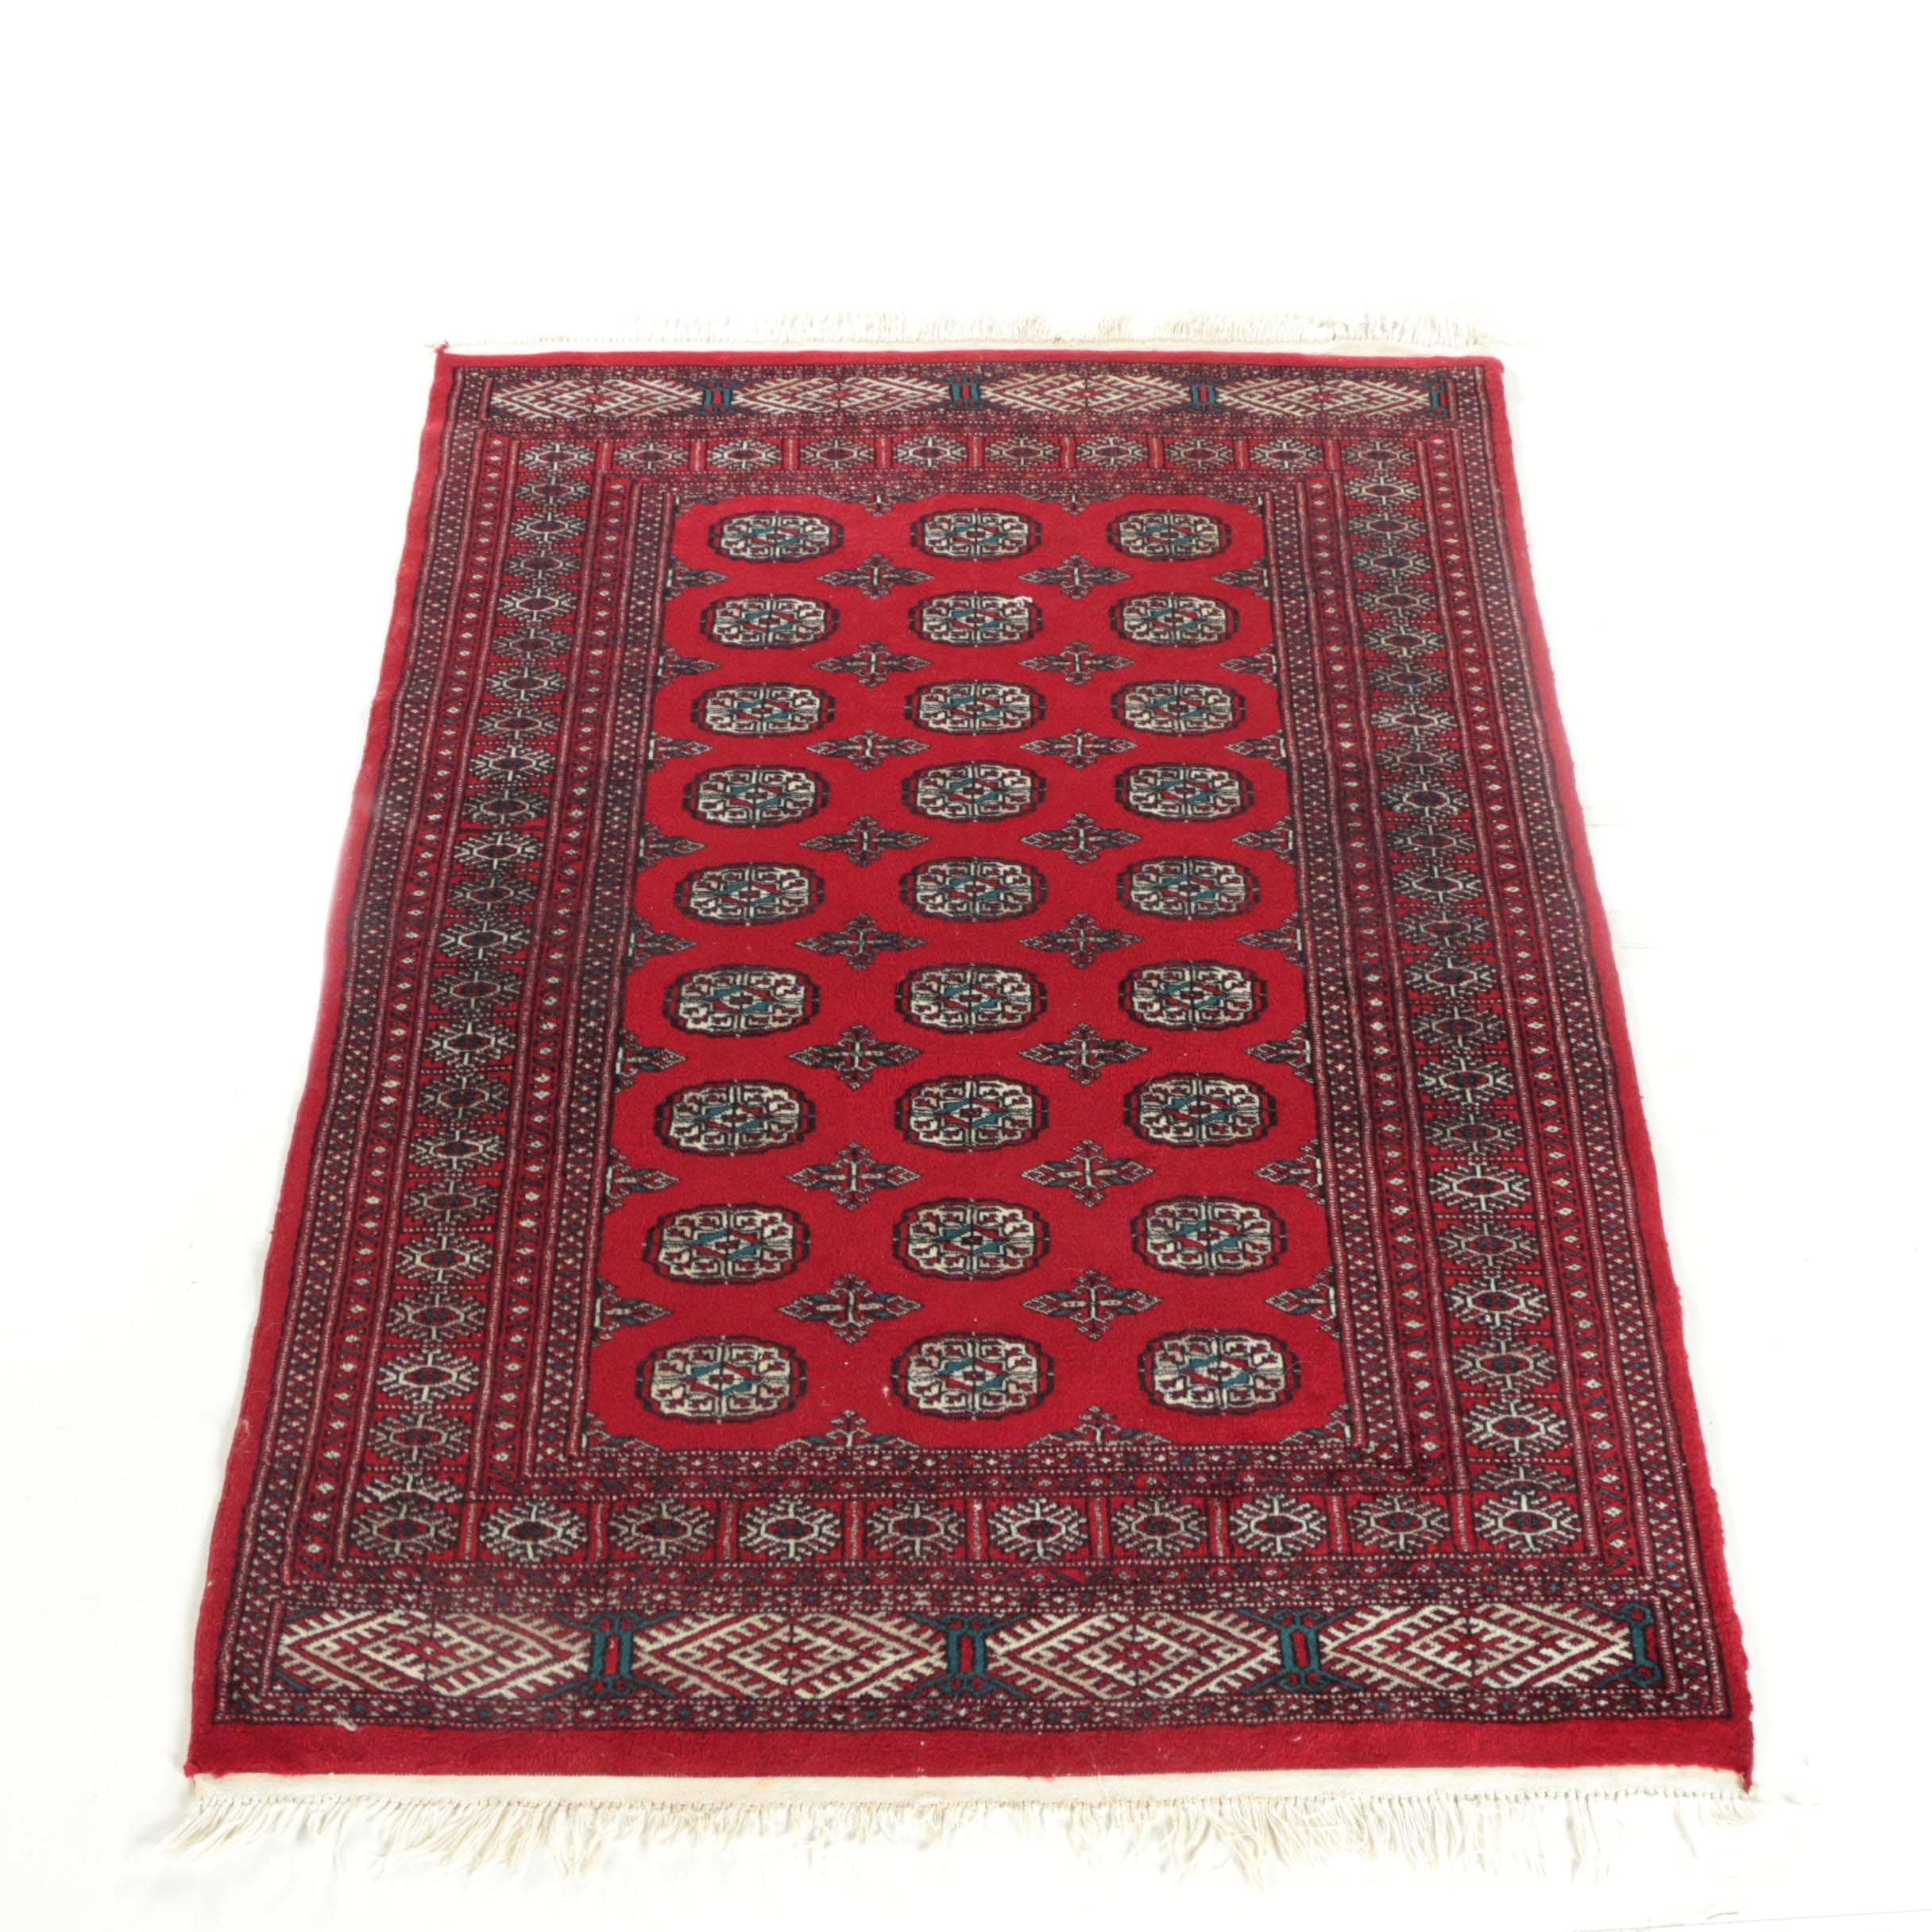 Finely Hand-Knotted Pakistani Bokhara Wool Area Rug